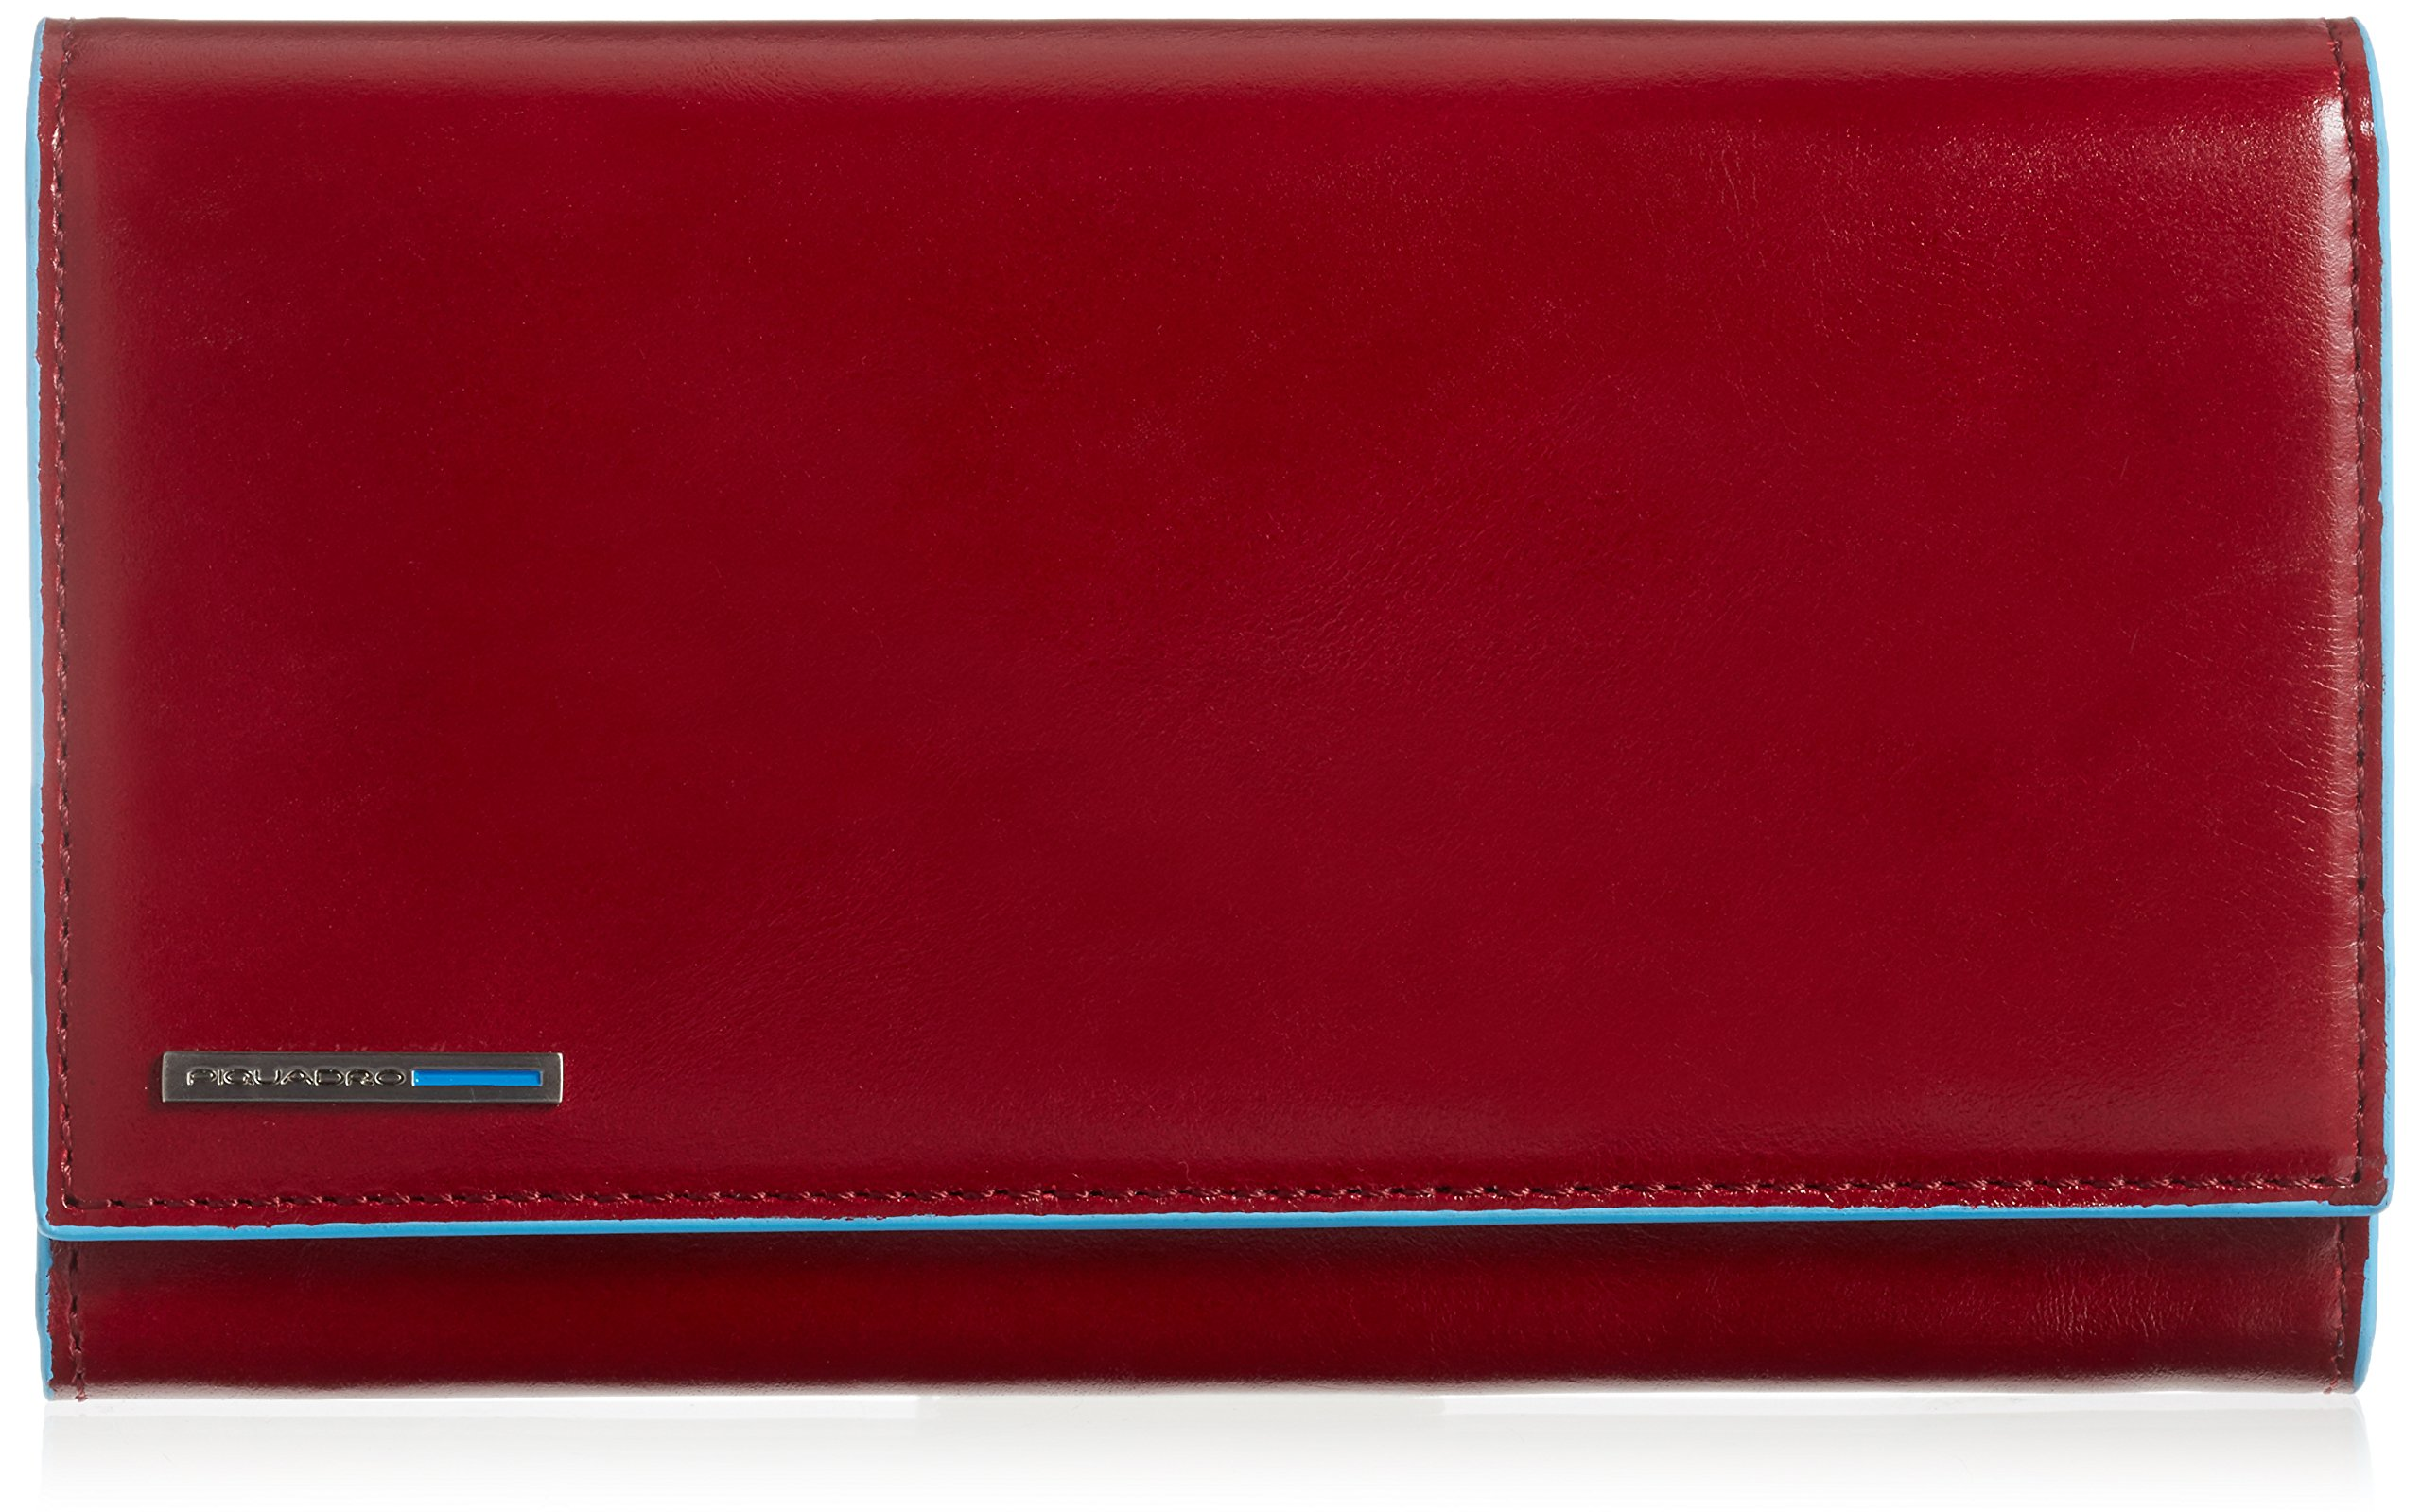 Piquadro Women's Wallet with Flap and Three Dividers with Document Holder, Red, One Size